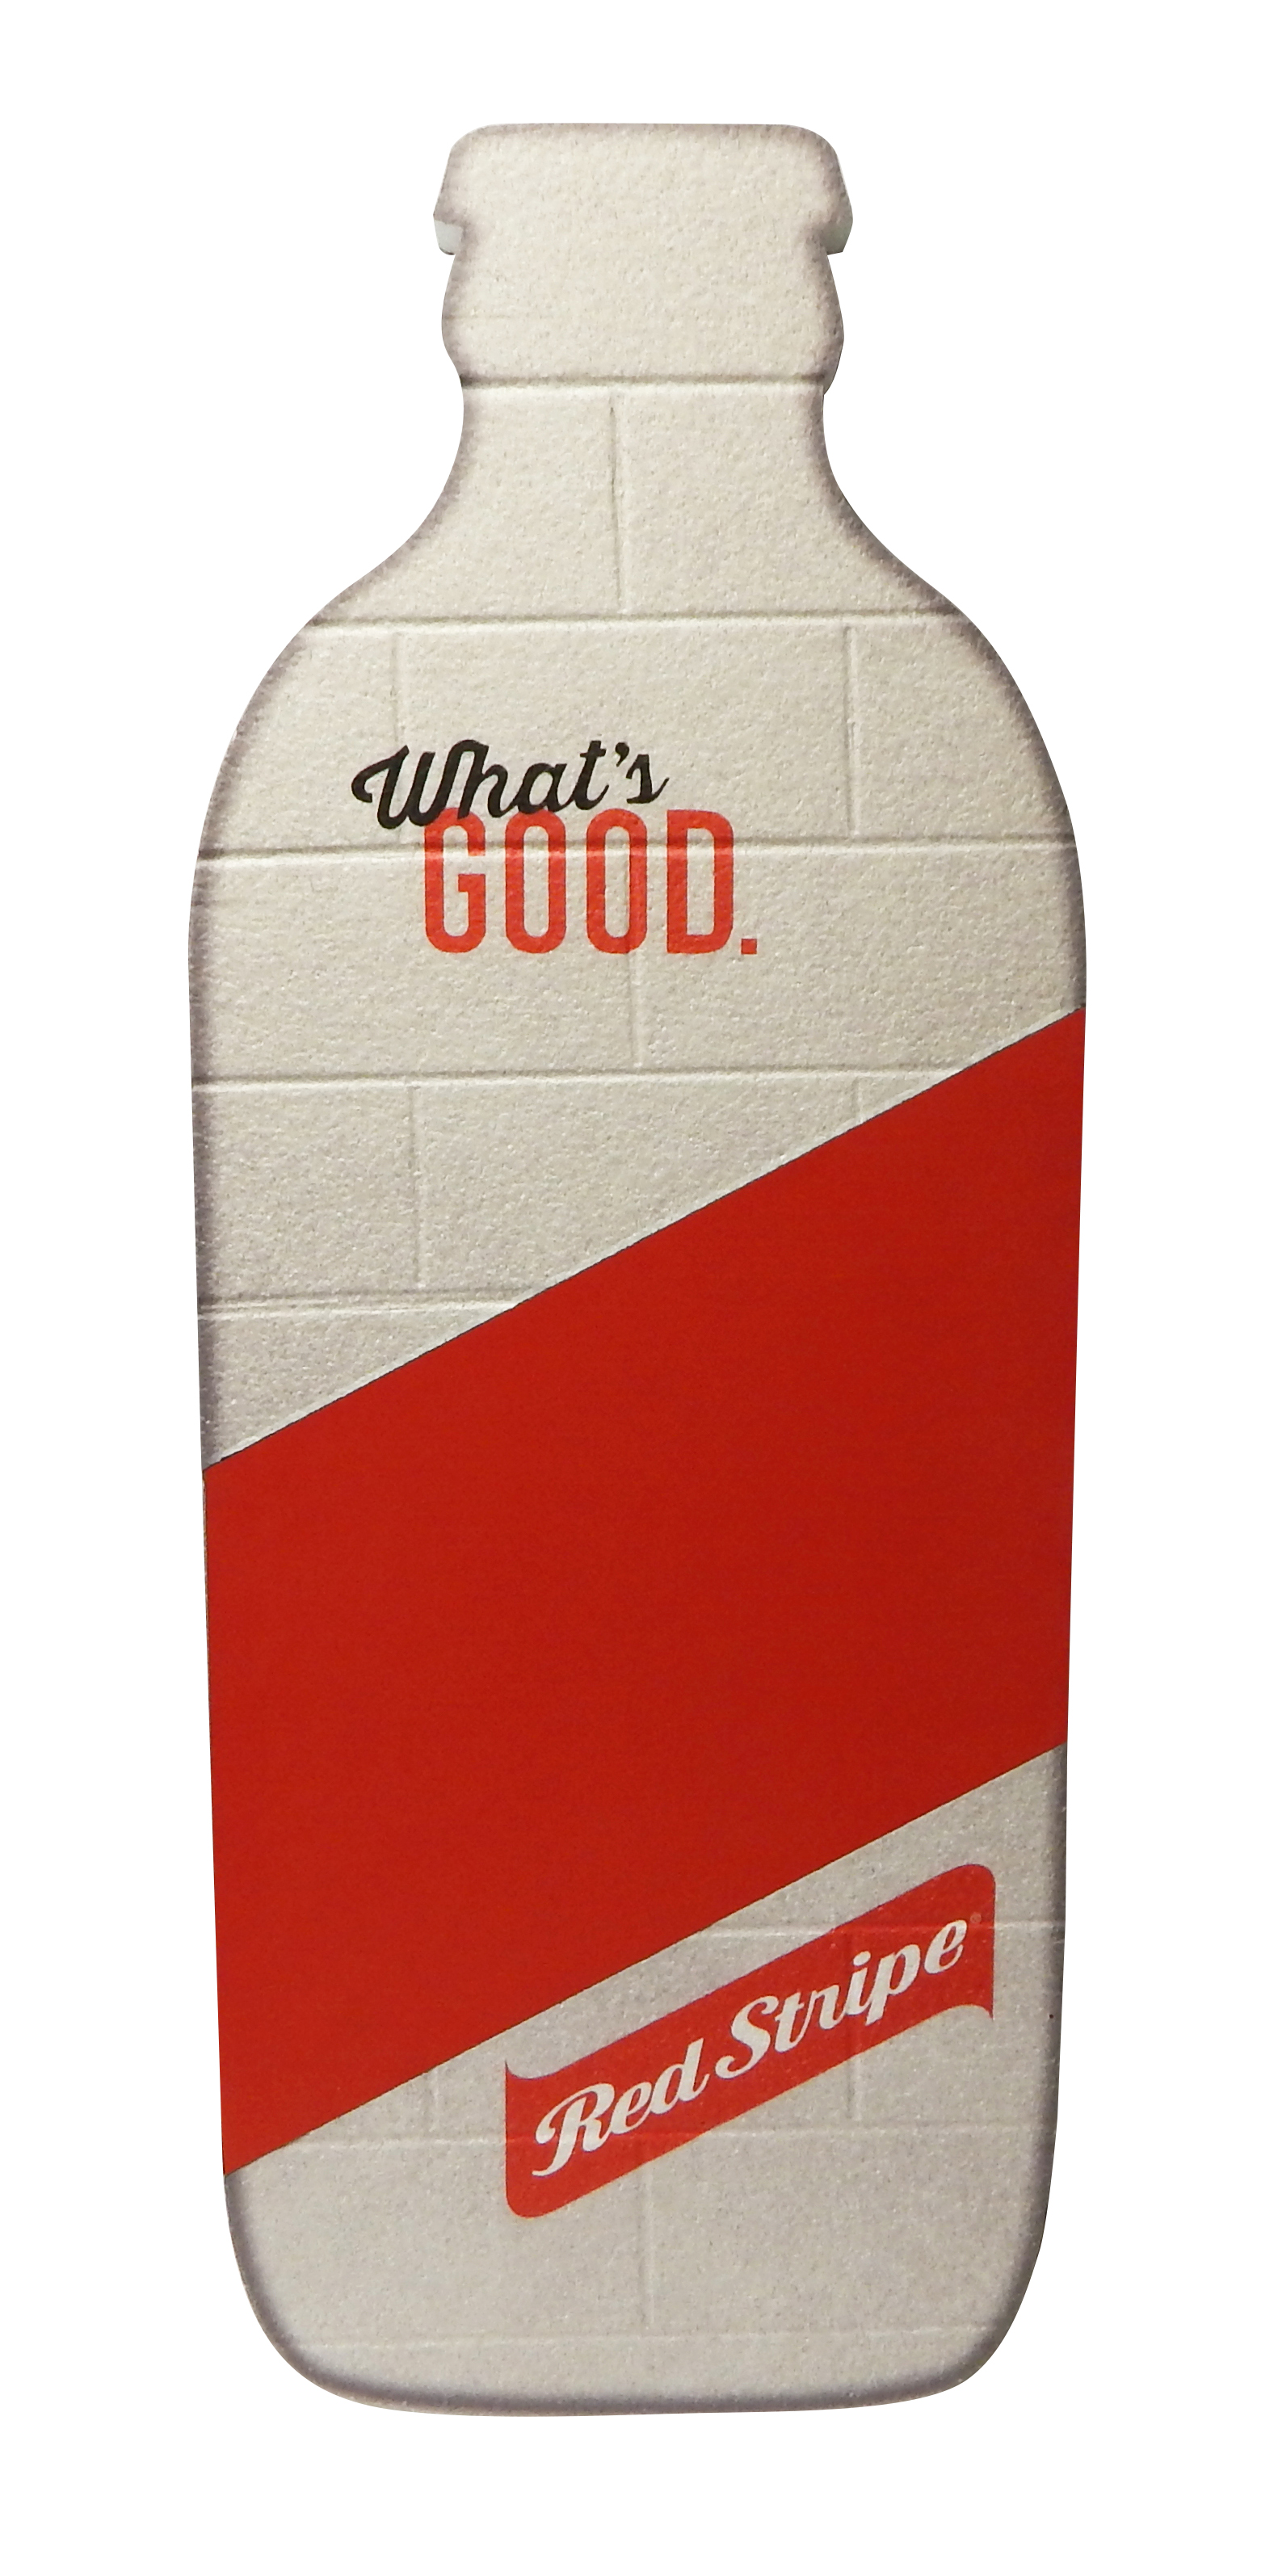 Red Stripe Foam Chalkboard 2784 - 8-4-15